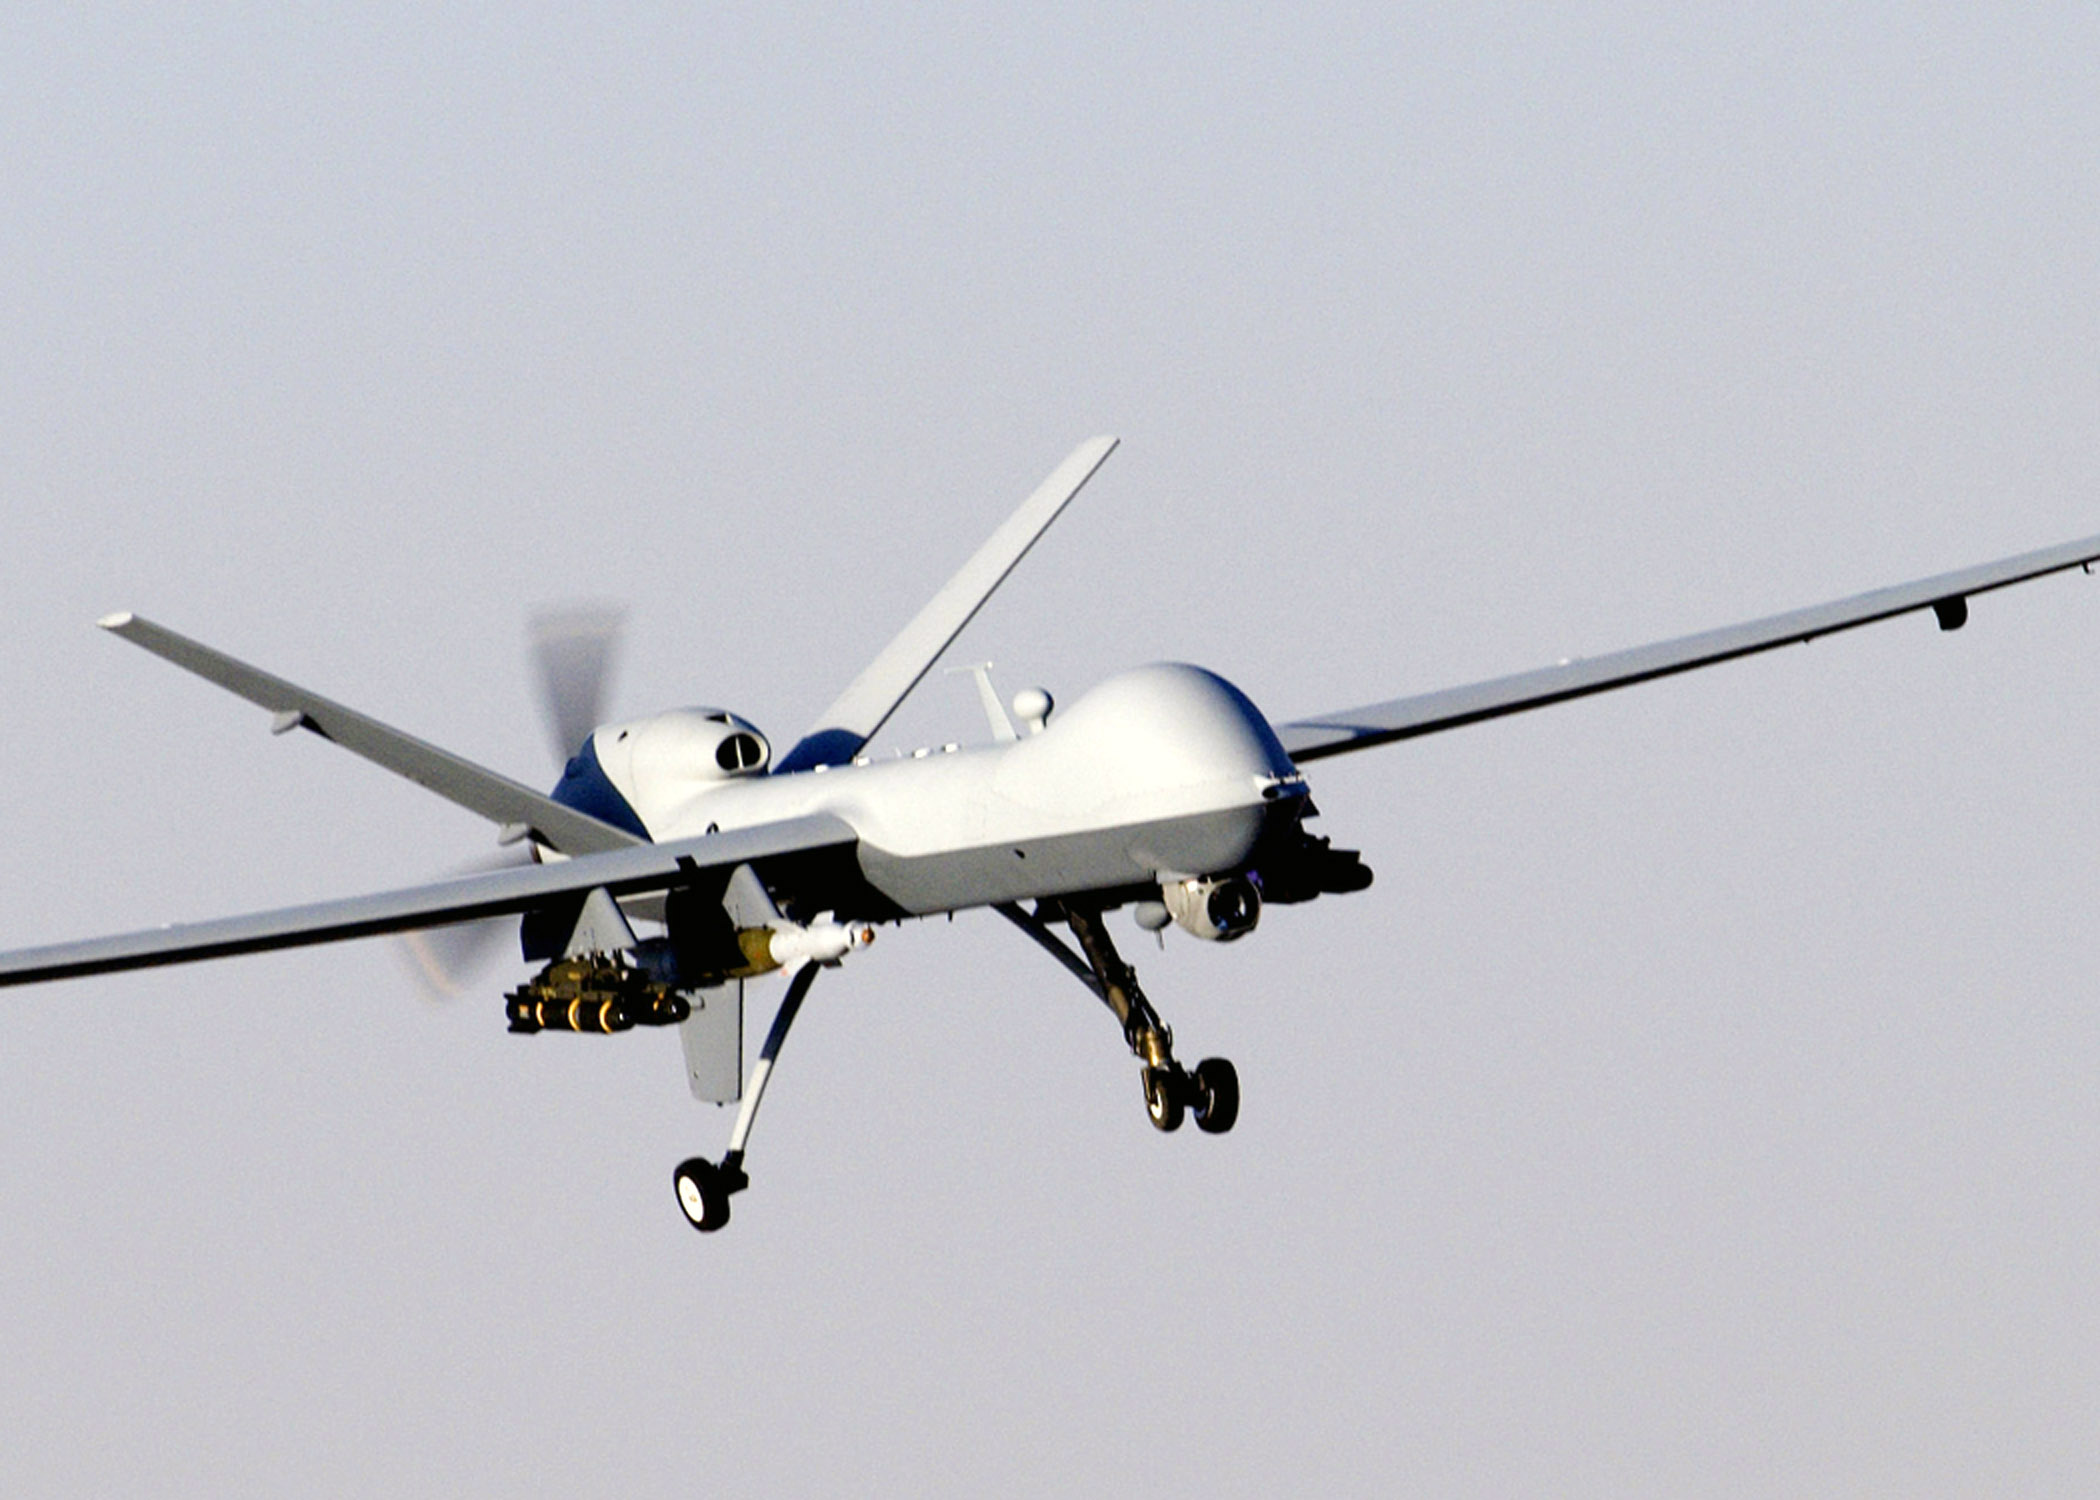 MQ-9_Reaper_in_flight_(2007).jpg